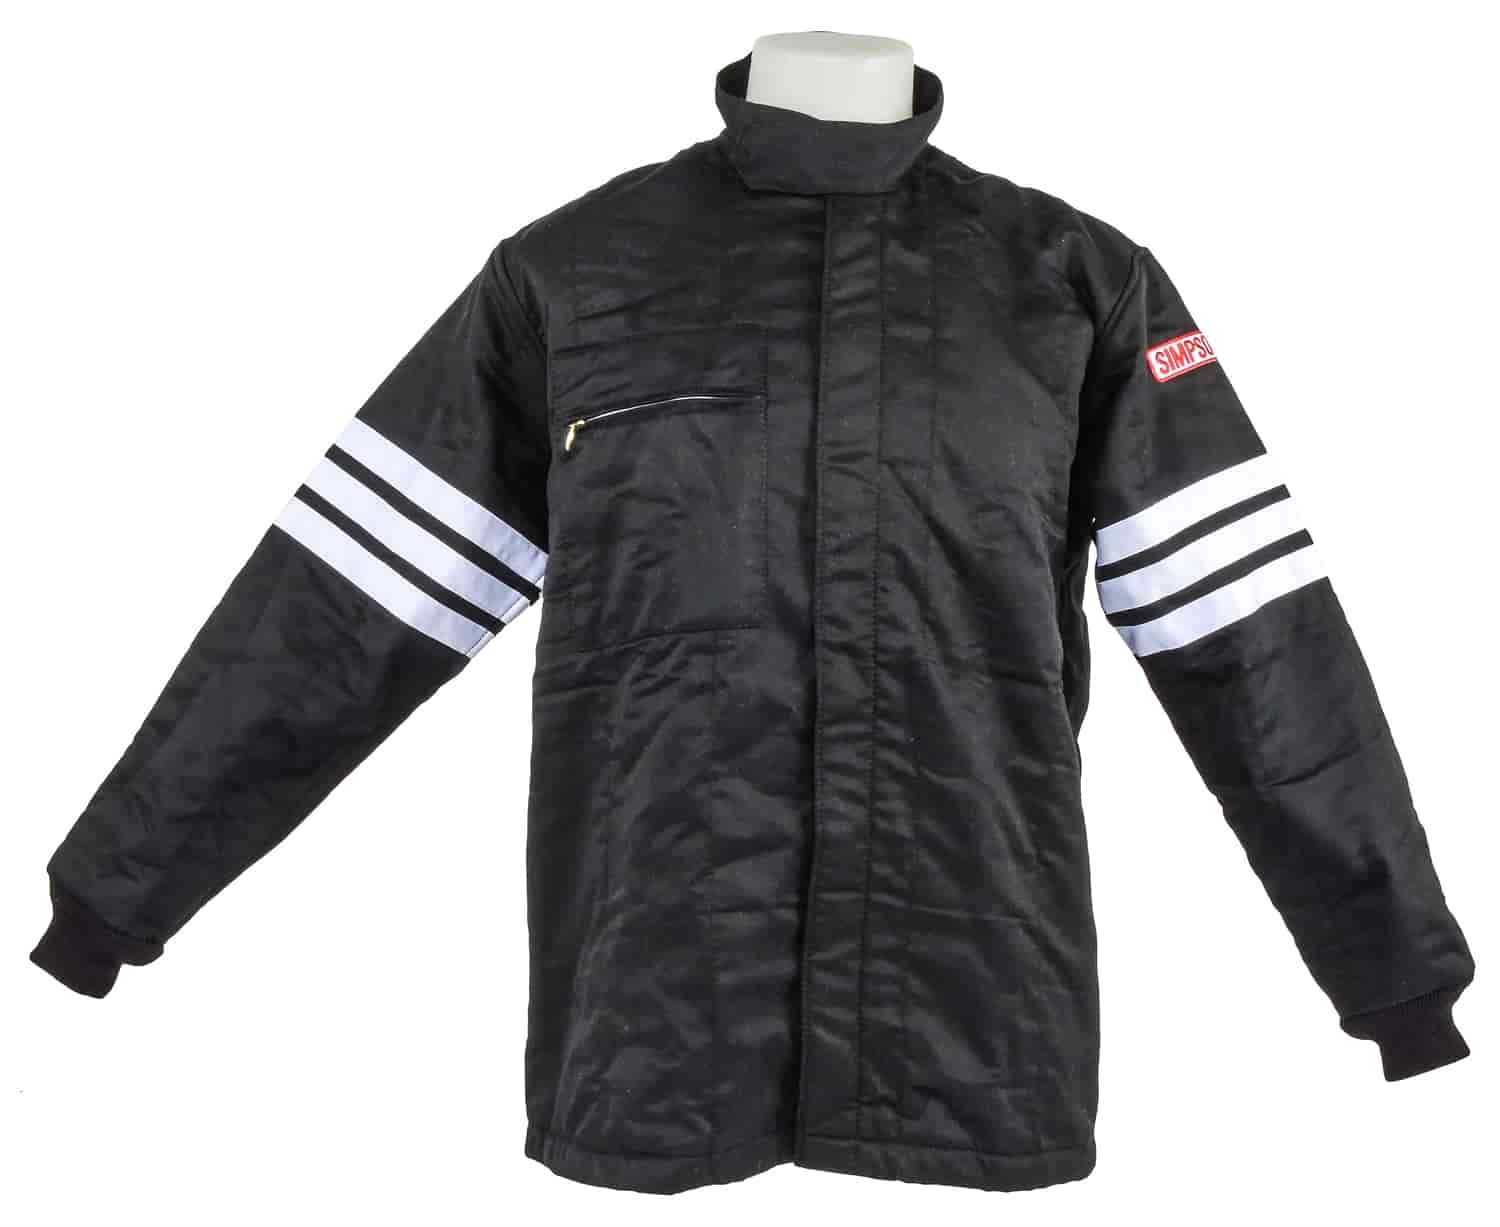 Simpson 0402112 - Simpson Classic 3-Stripe SFI-5 Driving Jackets & Pants